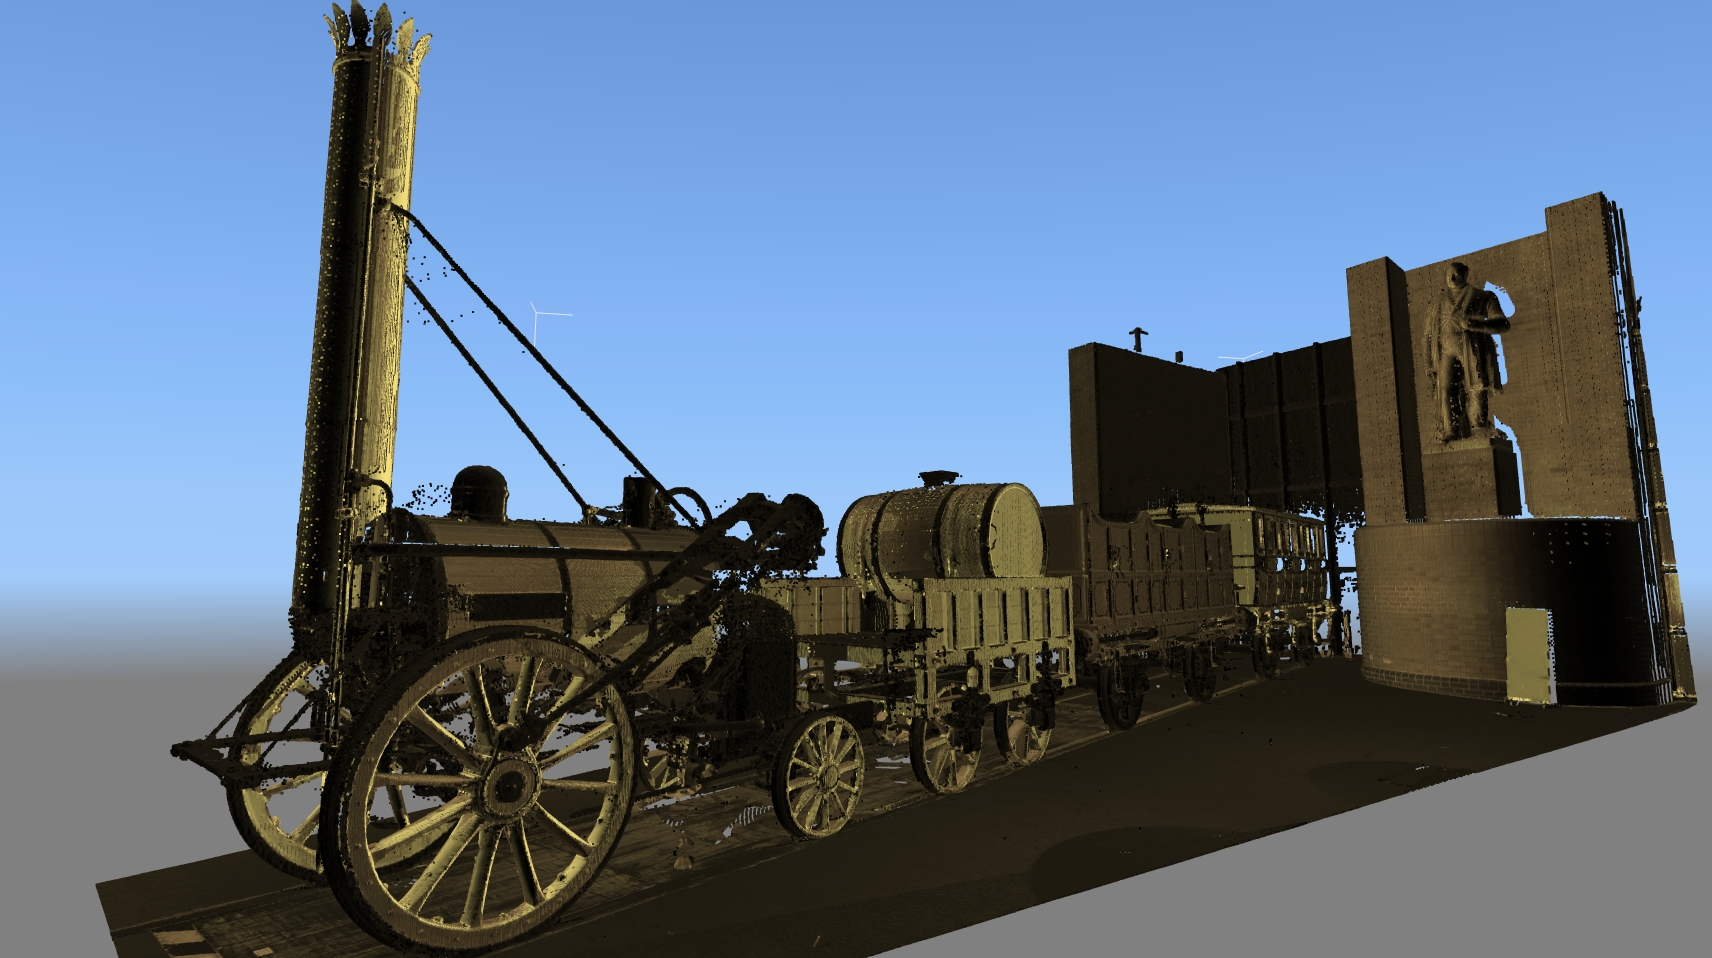 3d Model of old train.